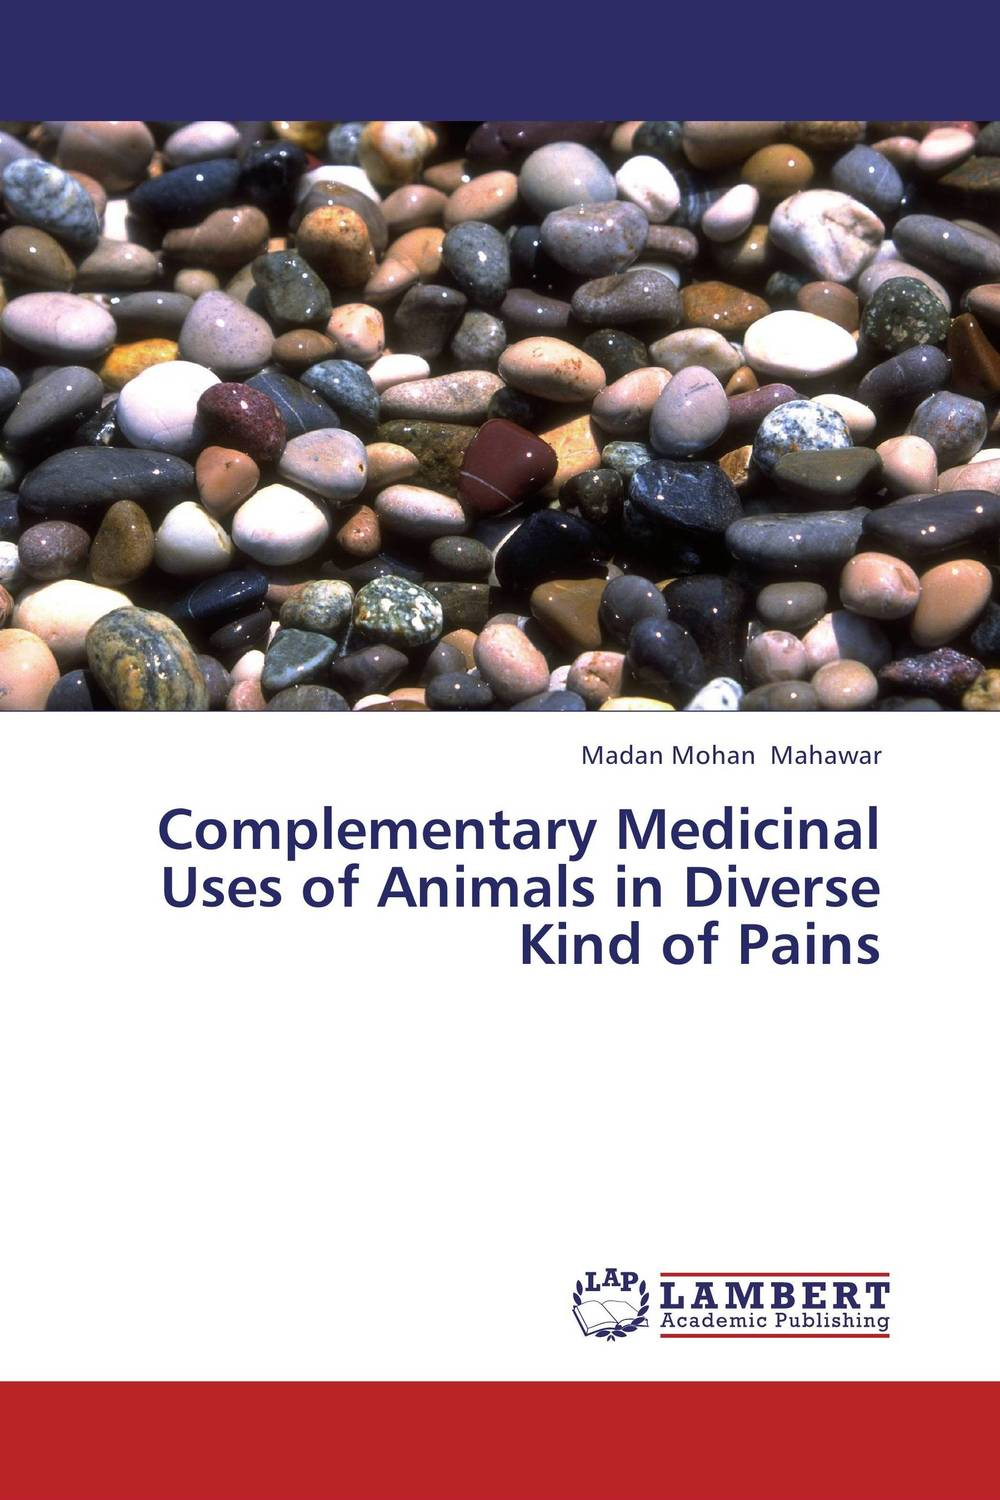 Complementary Medicinal Uses of Animals in Diverse Kind of Pains ethnomedicinal uses of animals in india with reference to asthma